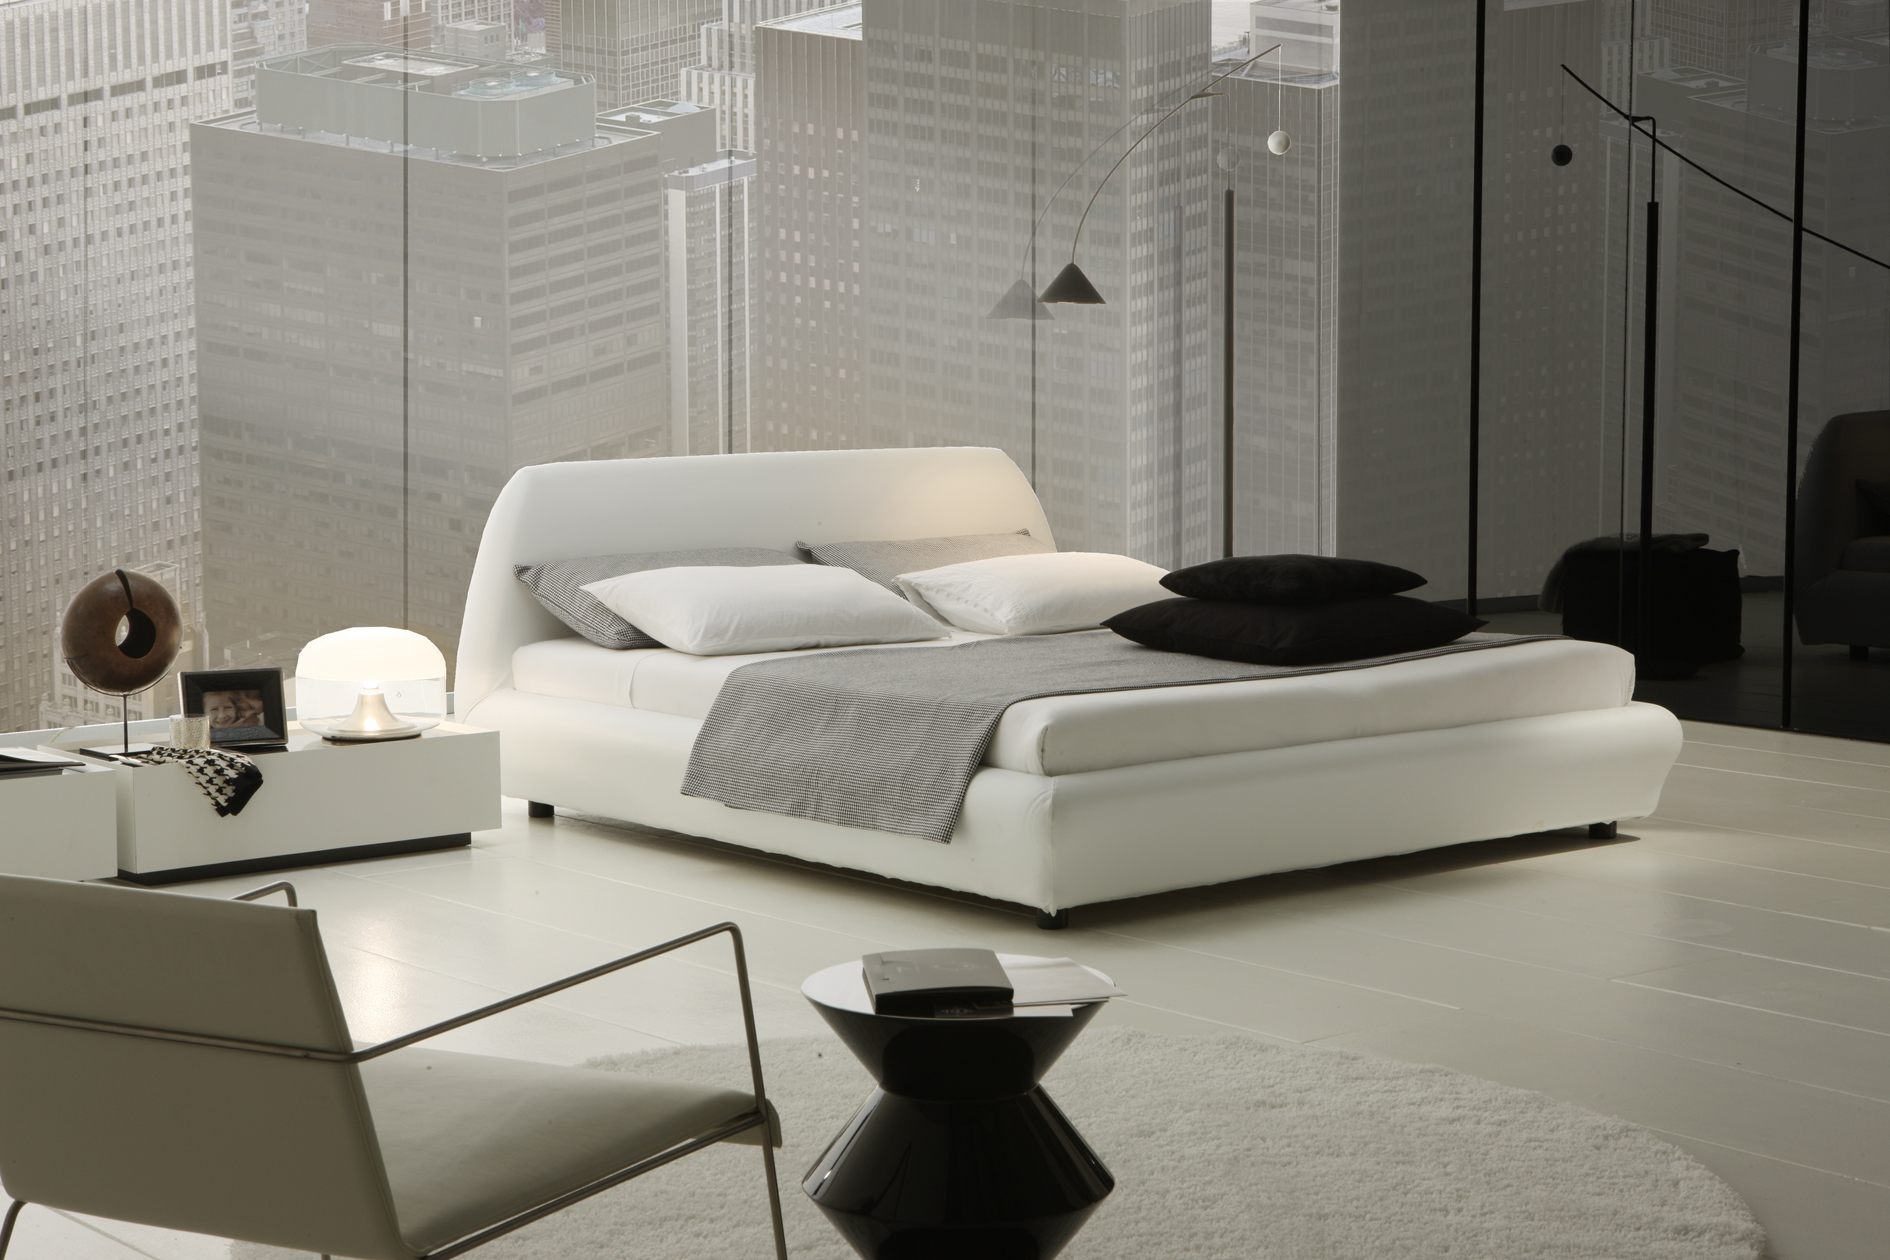 Modern-bedroom-with-white-design-of-the-bed-and-white-bedside-table